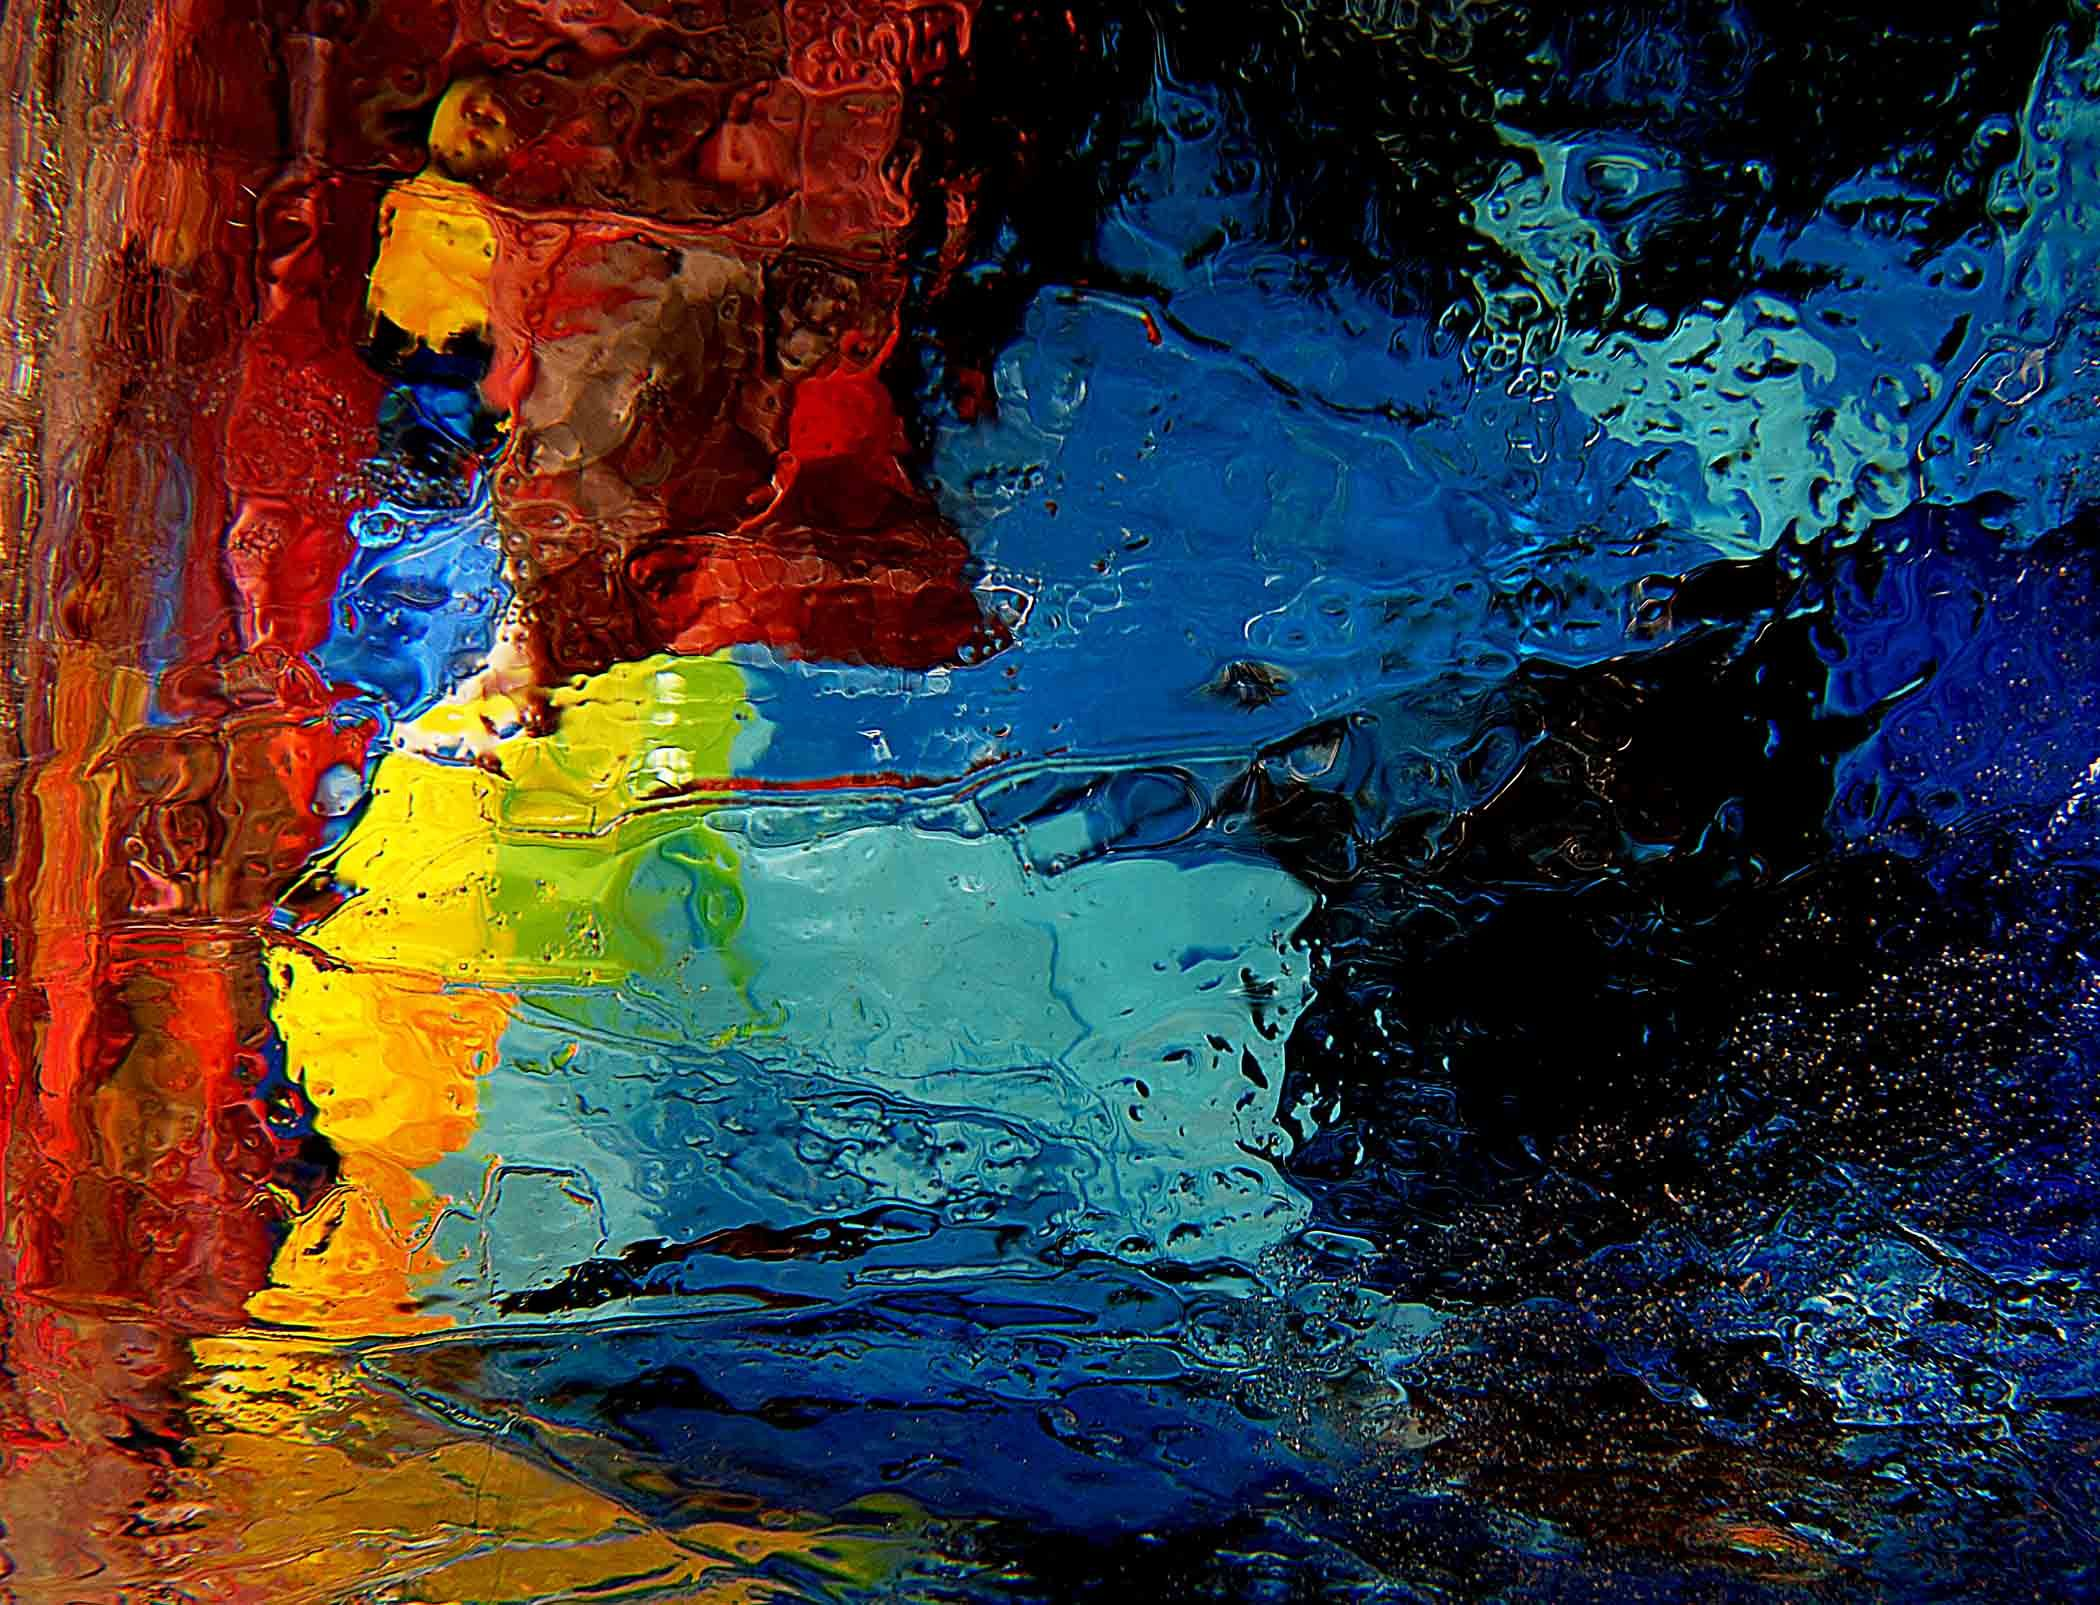 Abstract Water Painting Colors Samsung Galaxy S5 Hd: Http://www.jeffrennicke.com/photography/ I Was Drawn To